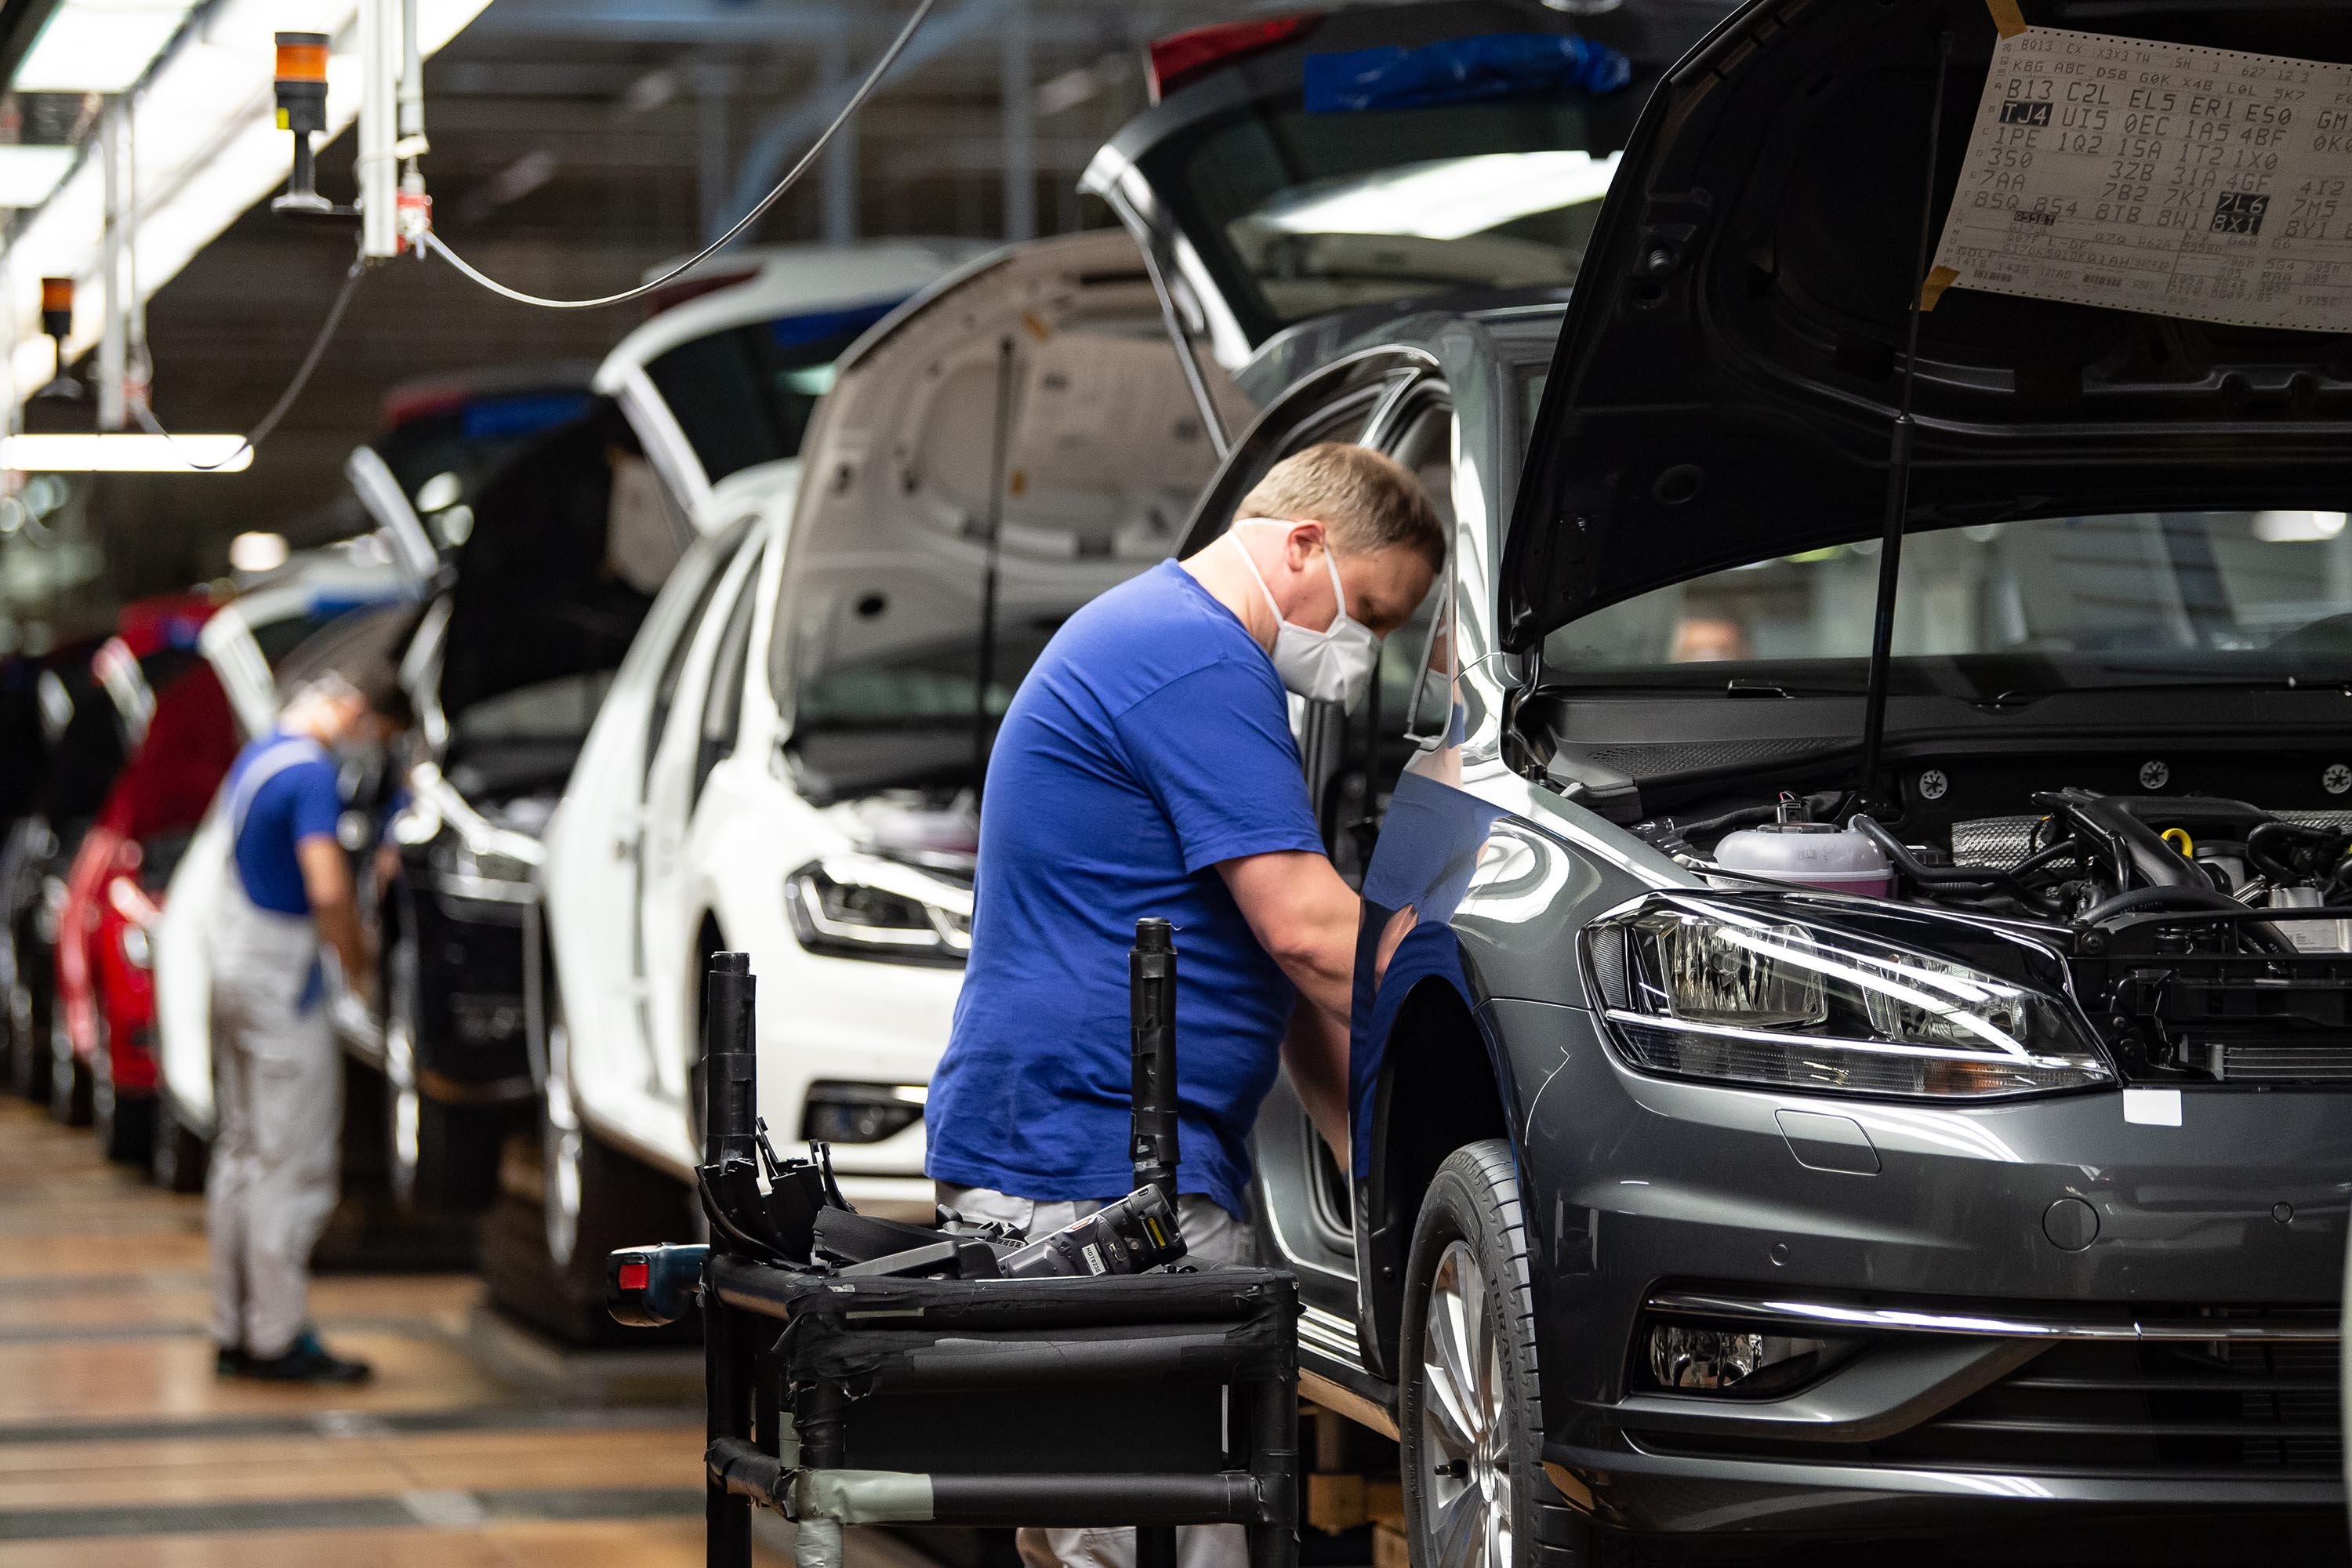 An employee works on a production line after Volkswagen's Wolfsburg Plant reopened on April 27, in Wolfsburg, Germany.